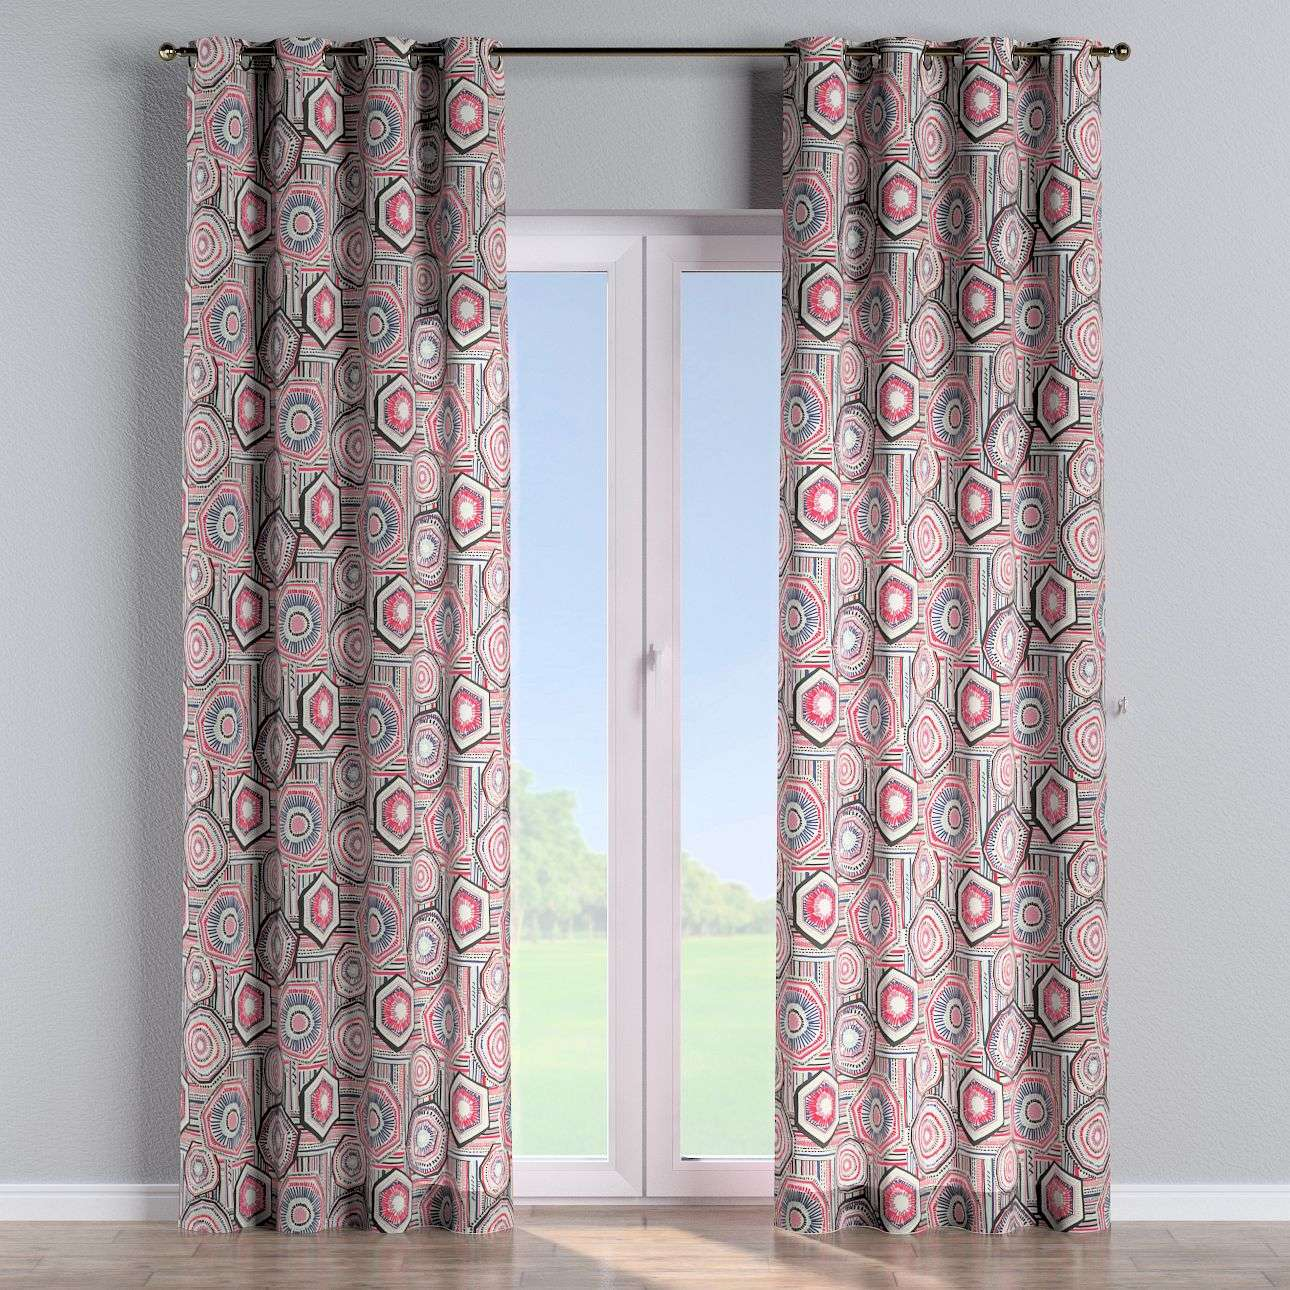 Eyelet curtains 130 × 260 cm (51 × 102 inch) in collection New Art, fabric: 141-54